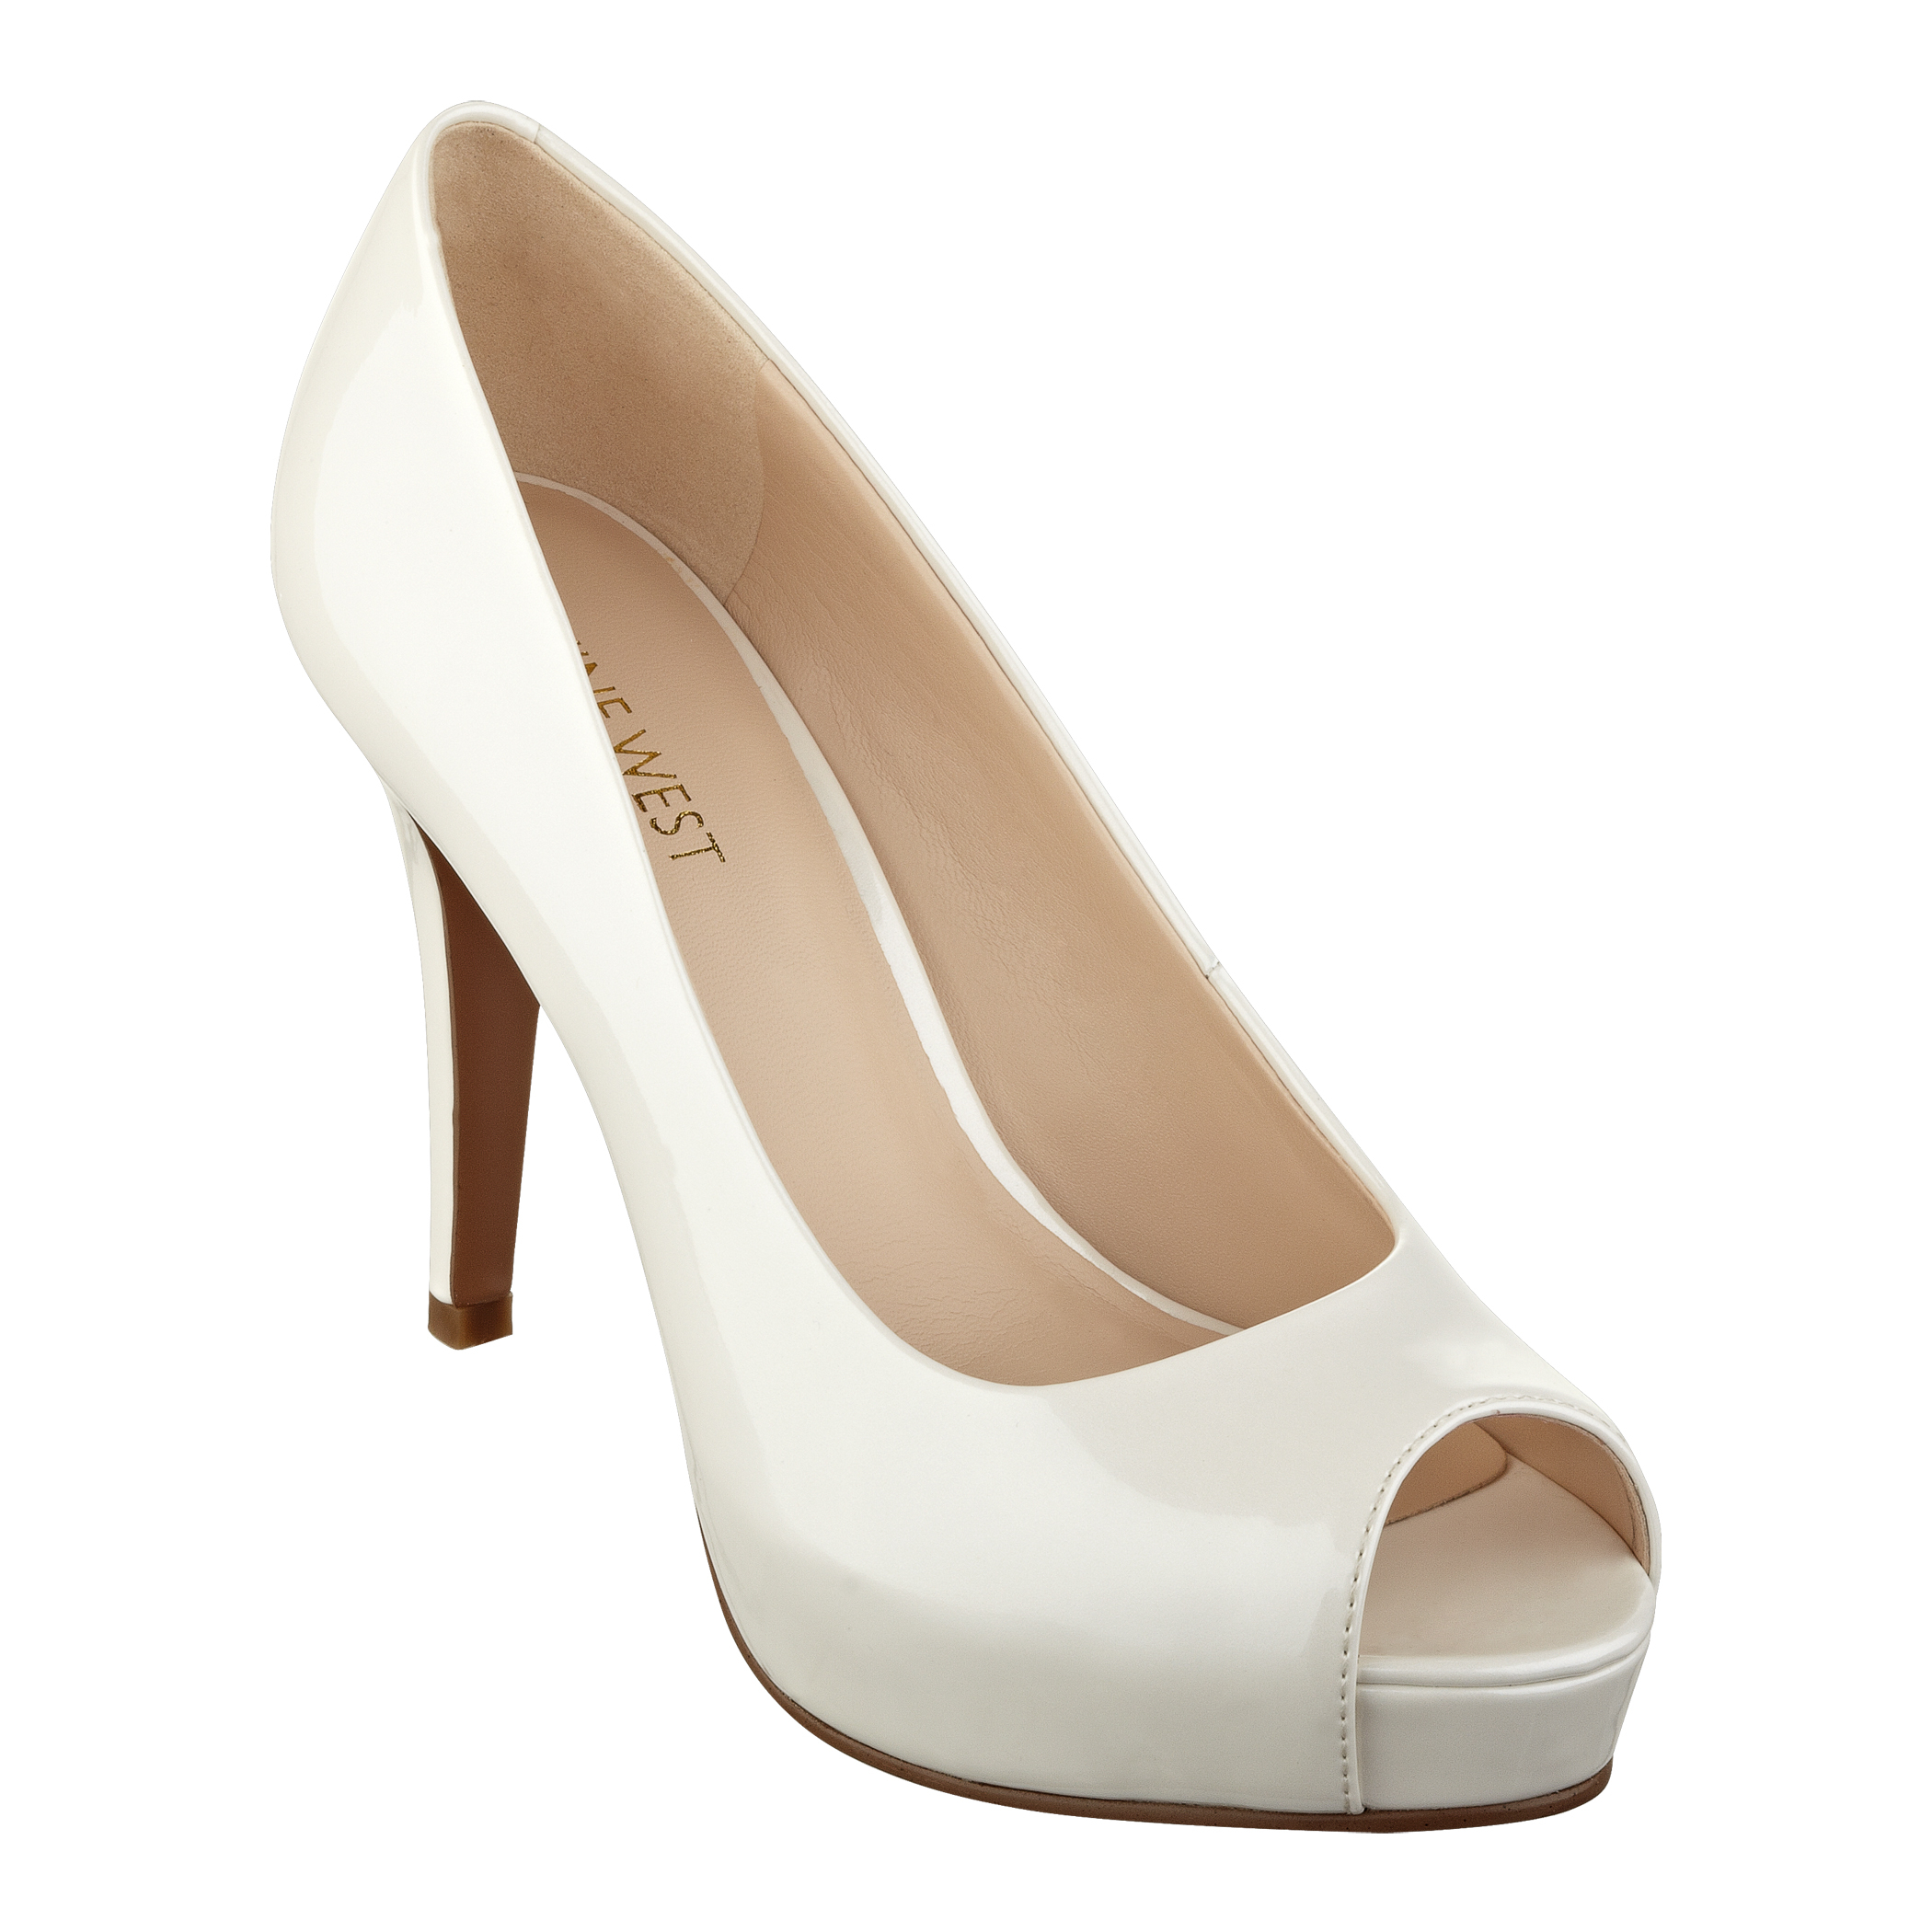 Nine west Camya Highheel Peeptoe Pumps Peep Toe Pumps in White | Lyst